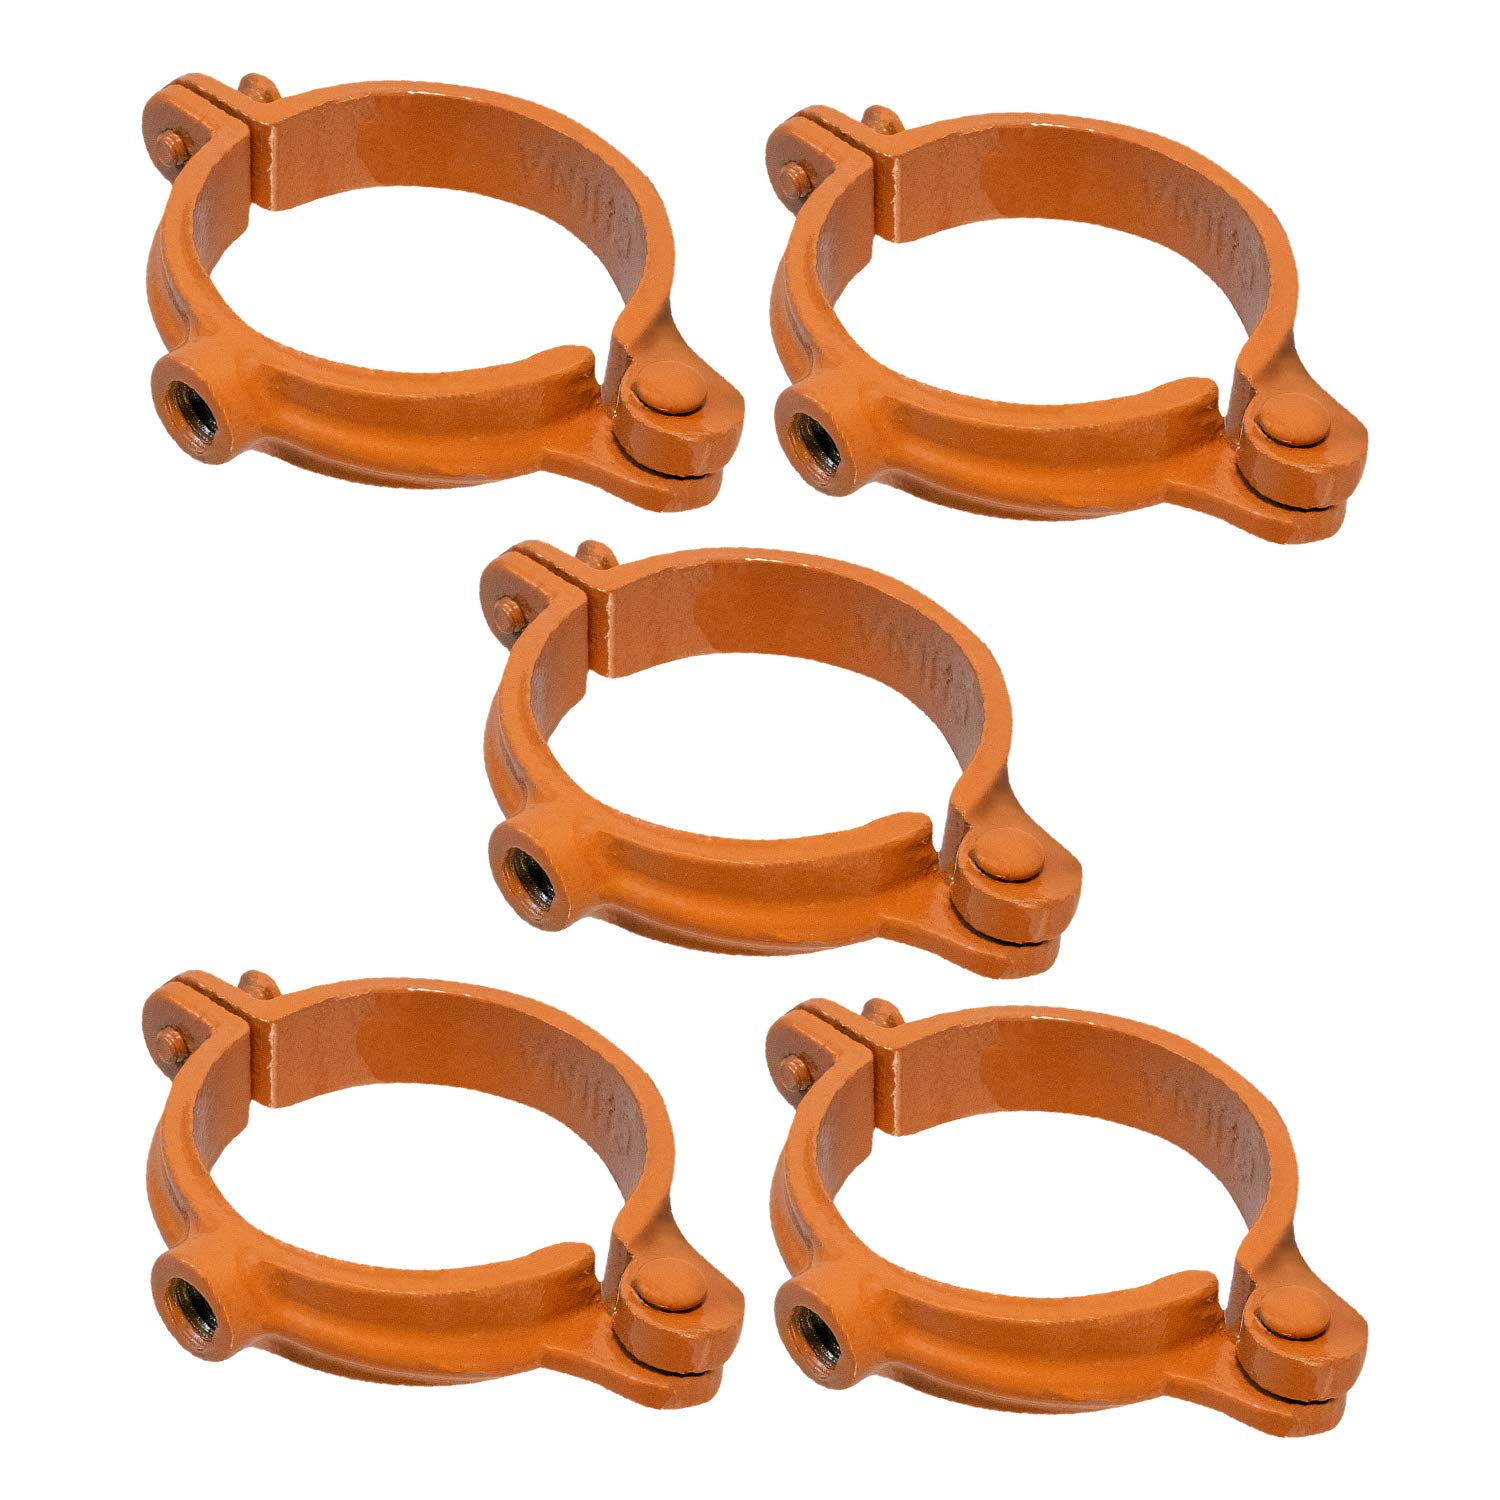 Copper Epoxy Coated Iron Highcraft HSH-CP03-5 Hinged Split Ring Pipe Hanger 3 in 5 Pieces